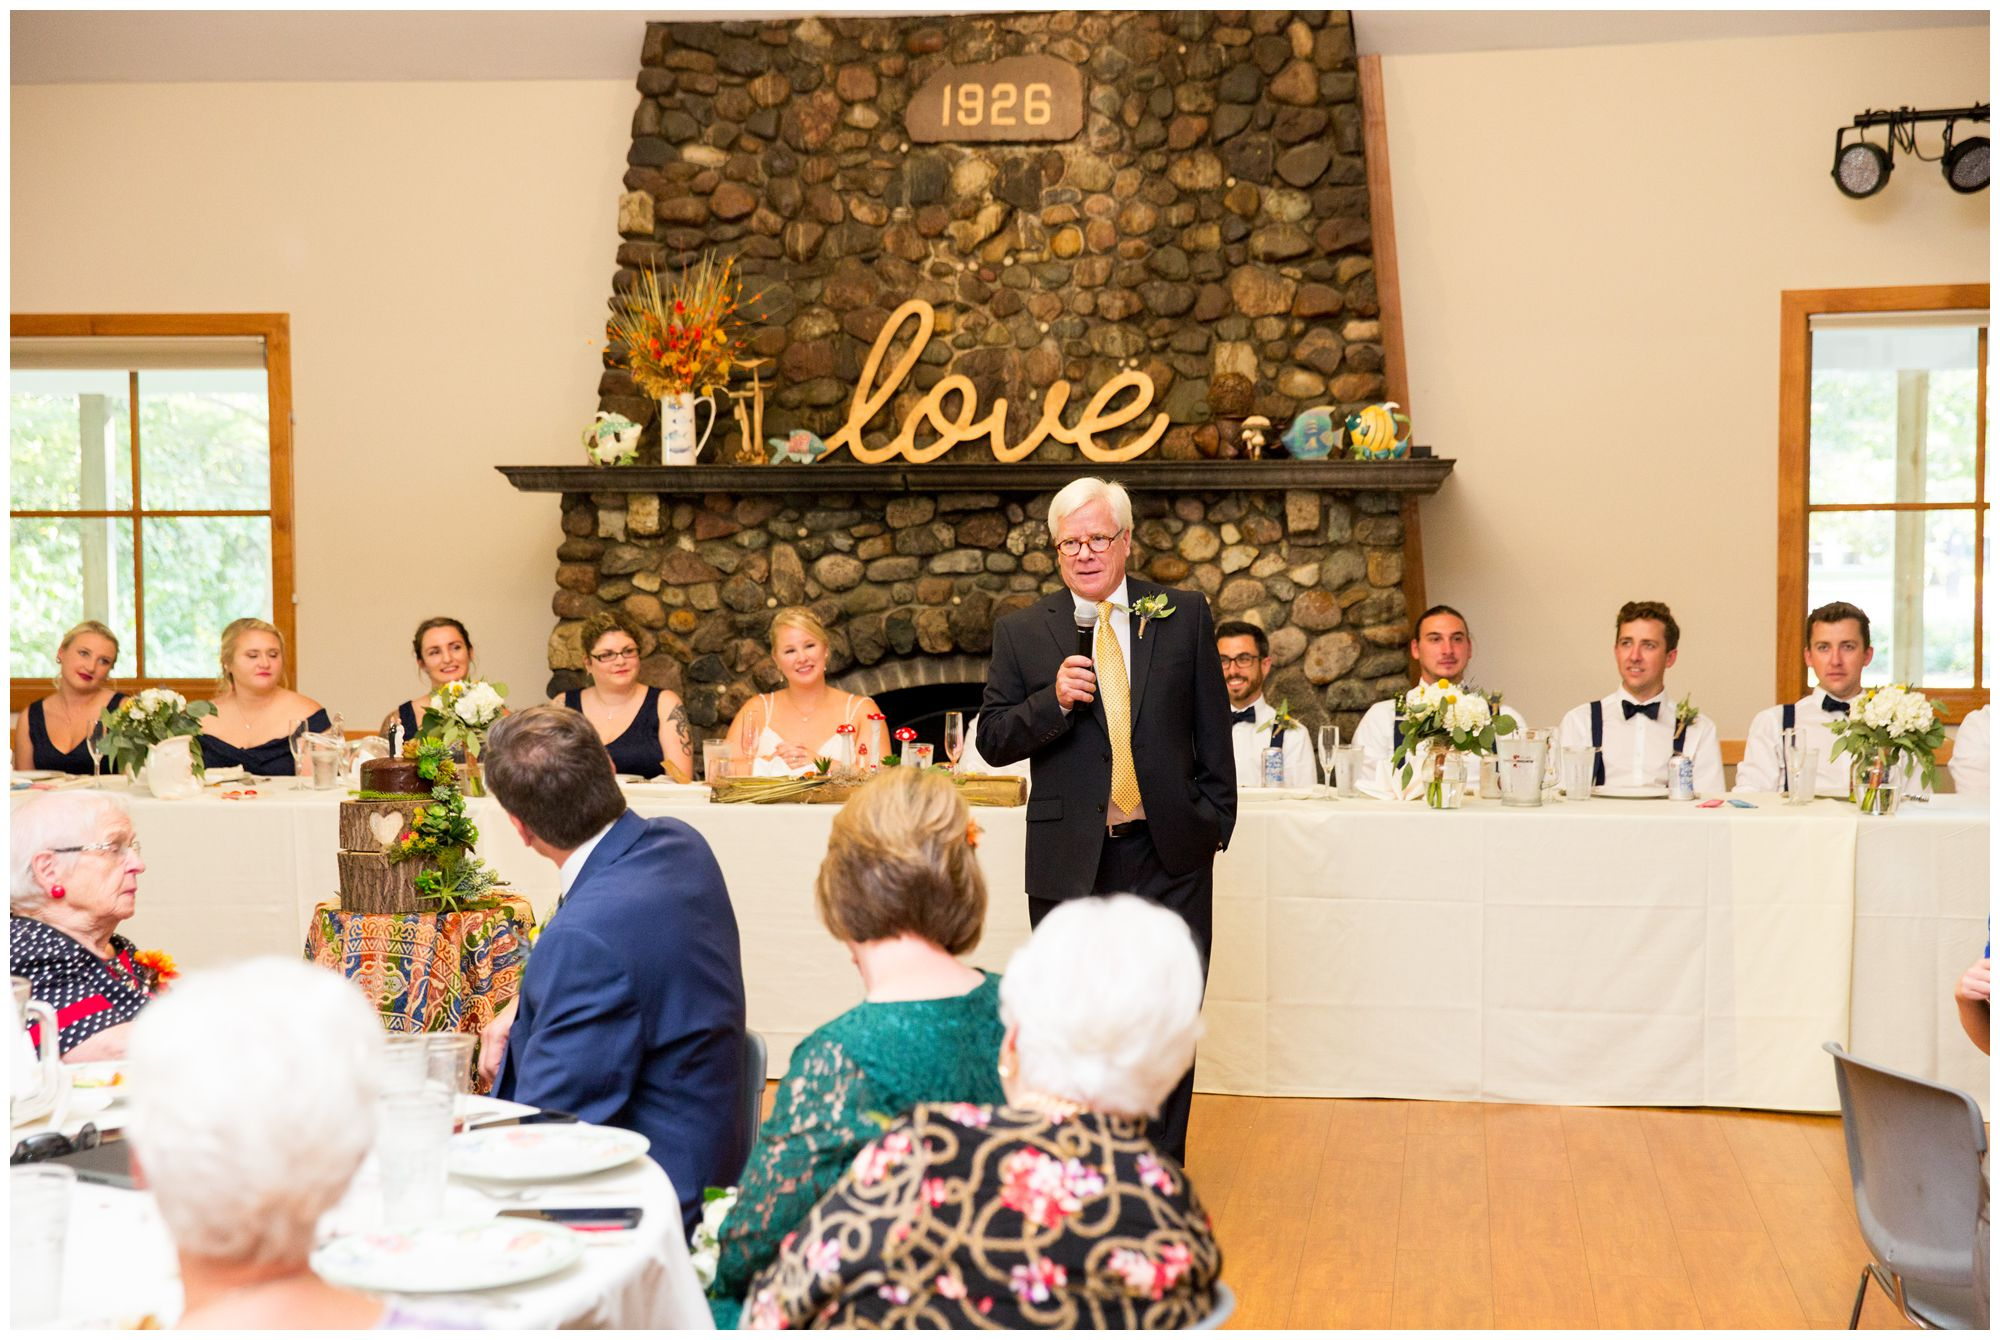 father of bride gives welcome speech at wedding reception at Forest Park Inn